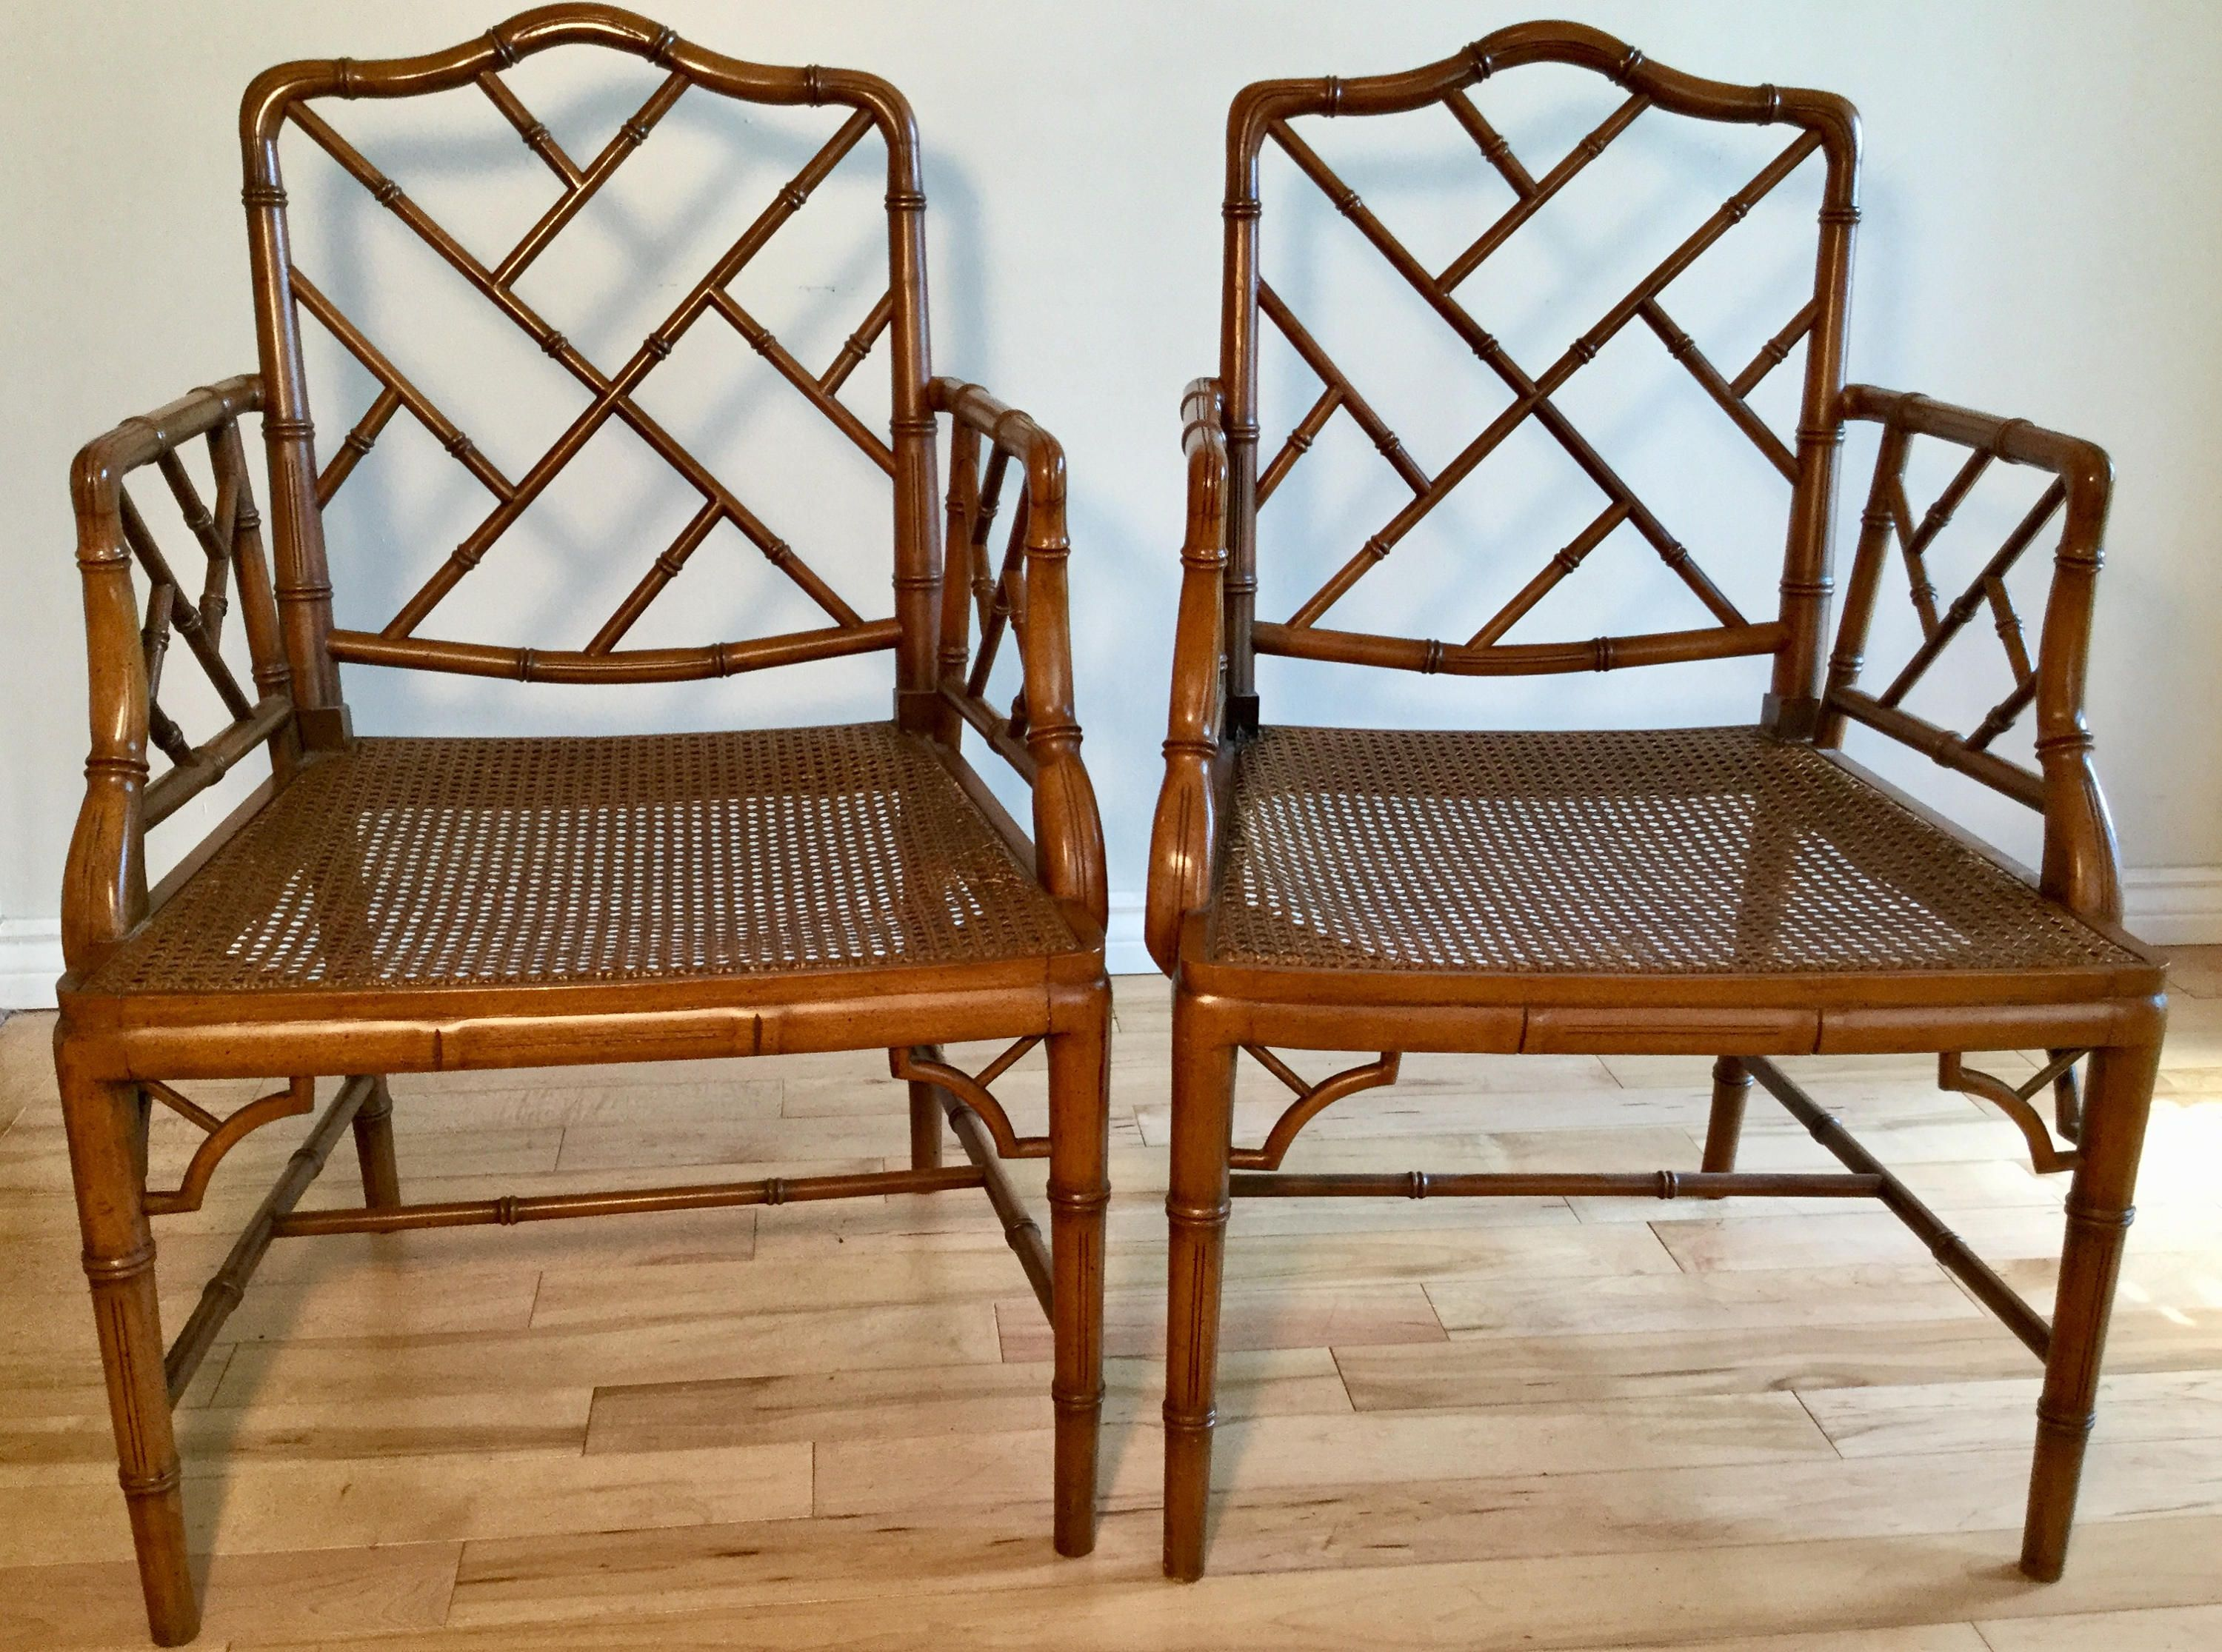 Bamboo chippendale chairs - Faux Bamboo Vintage Chippendale Chairs